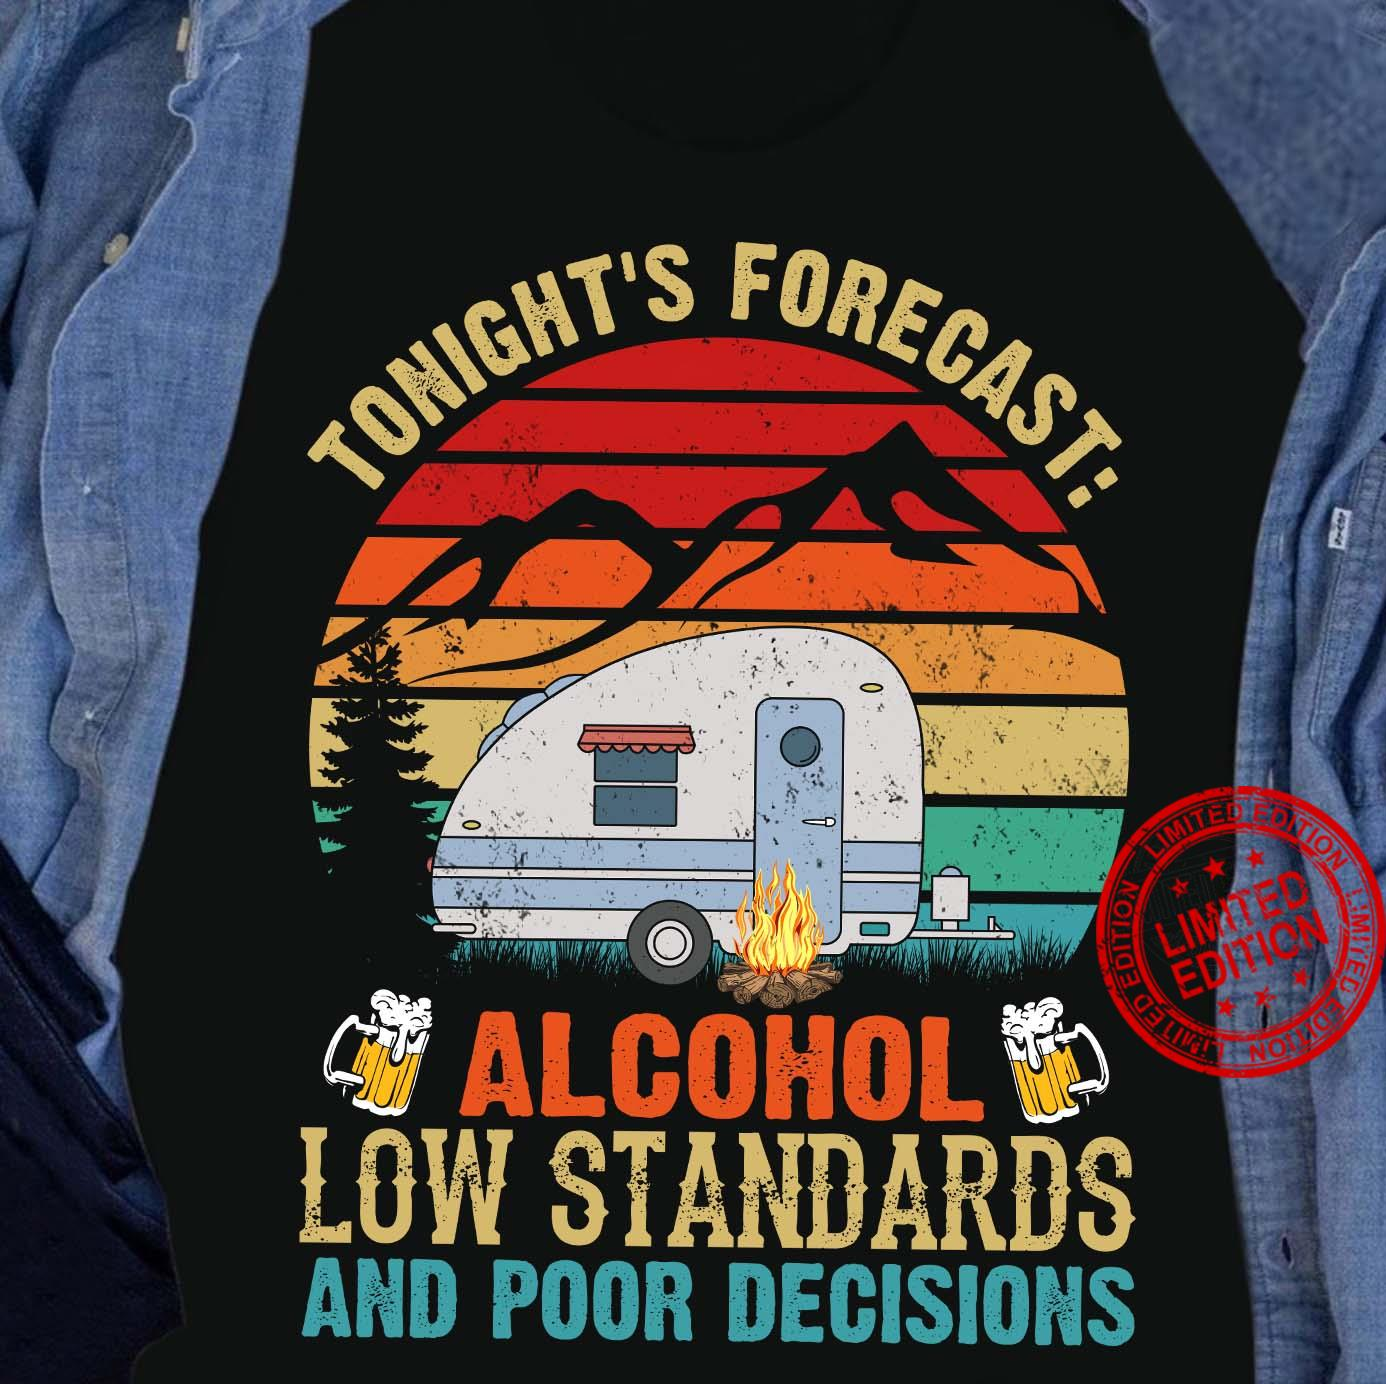 Tonight's Forecast Alcohol LOw Standards And Poor Decisions Shirt